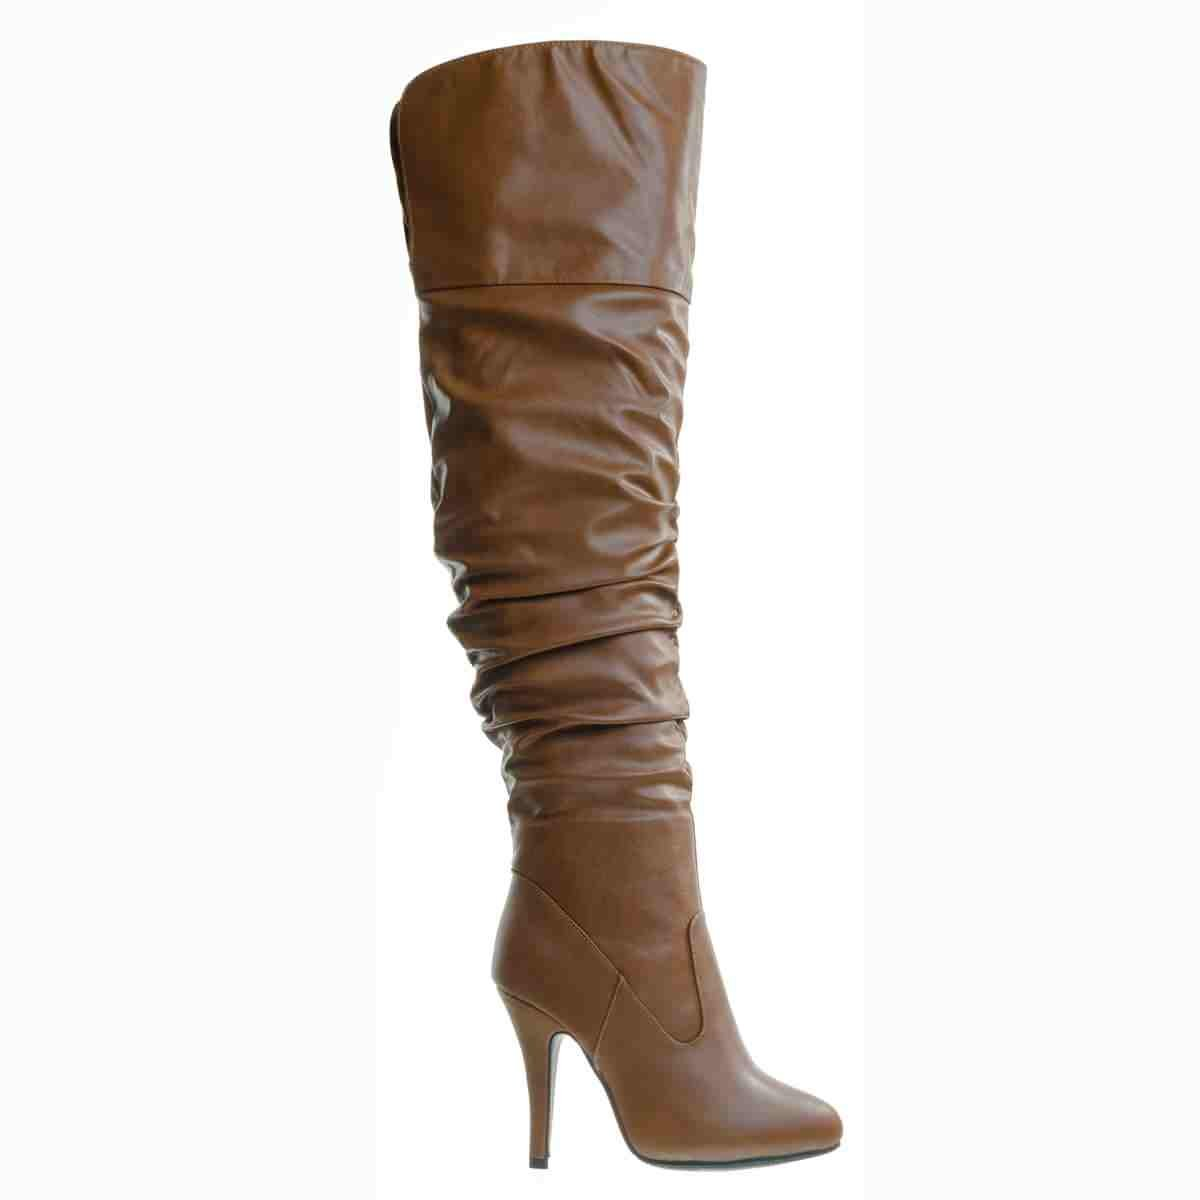 Women's Tan Fold Down Over-the-Knee Stretch Slouchy High-Heel Faux Leather Boots